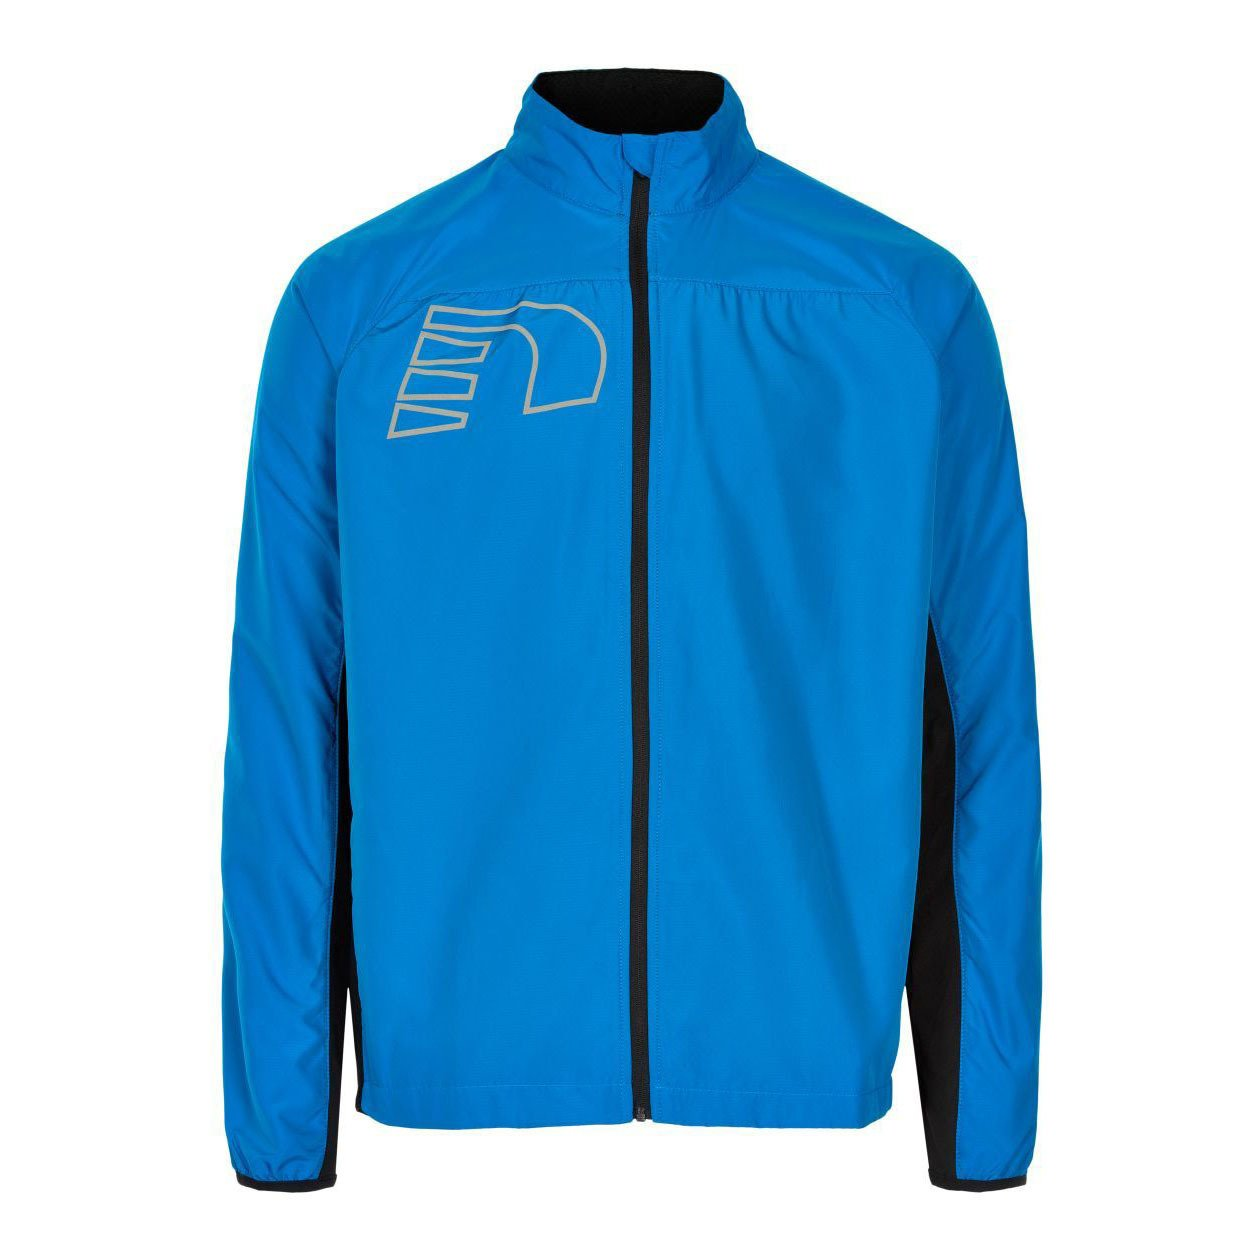 kurtka męska NEWLINE CORE CROSS JACKET / 17505-016 RunnersClub 42418